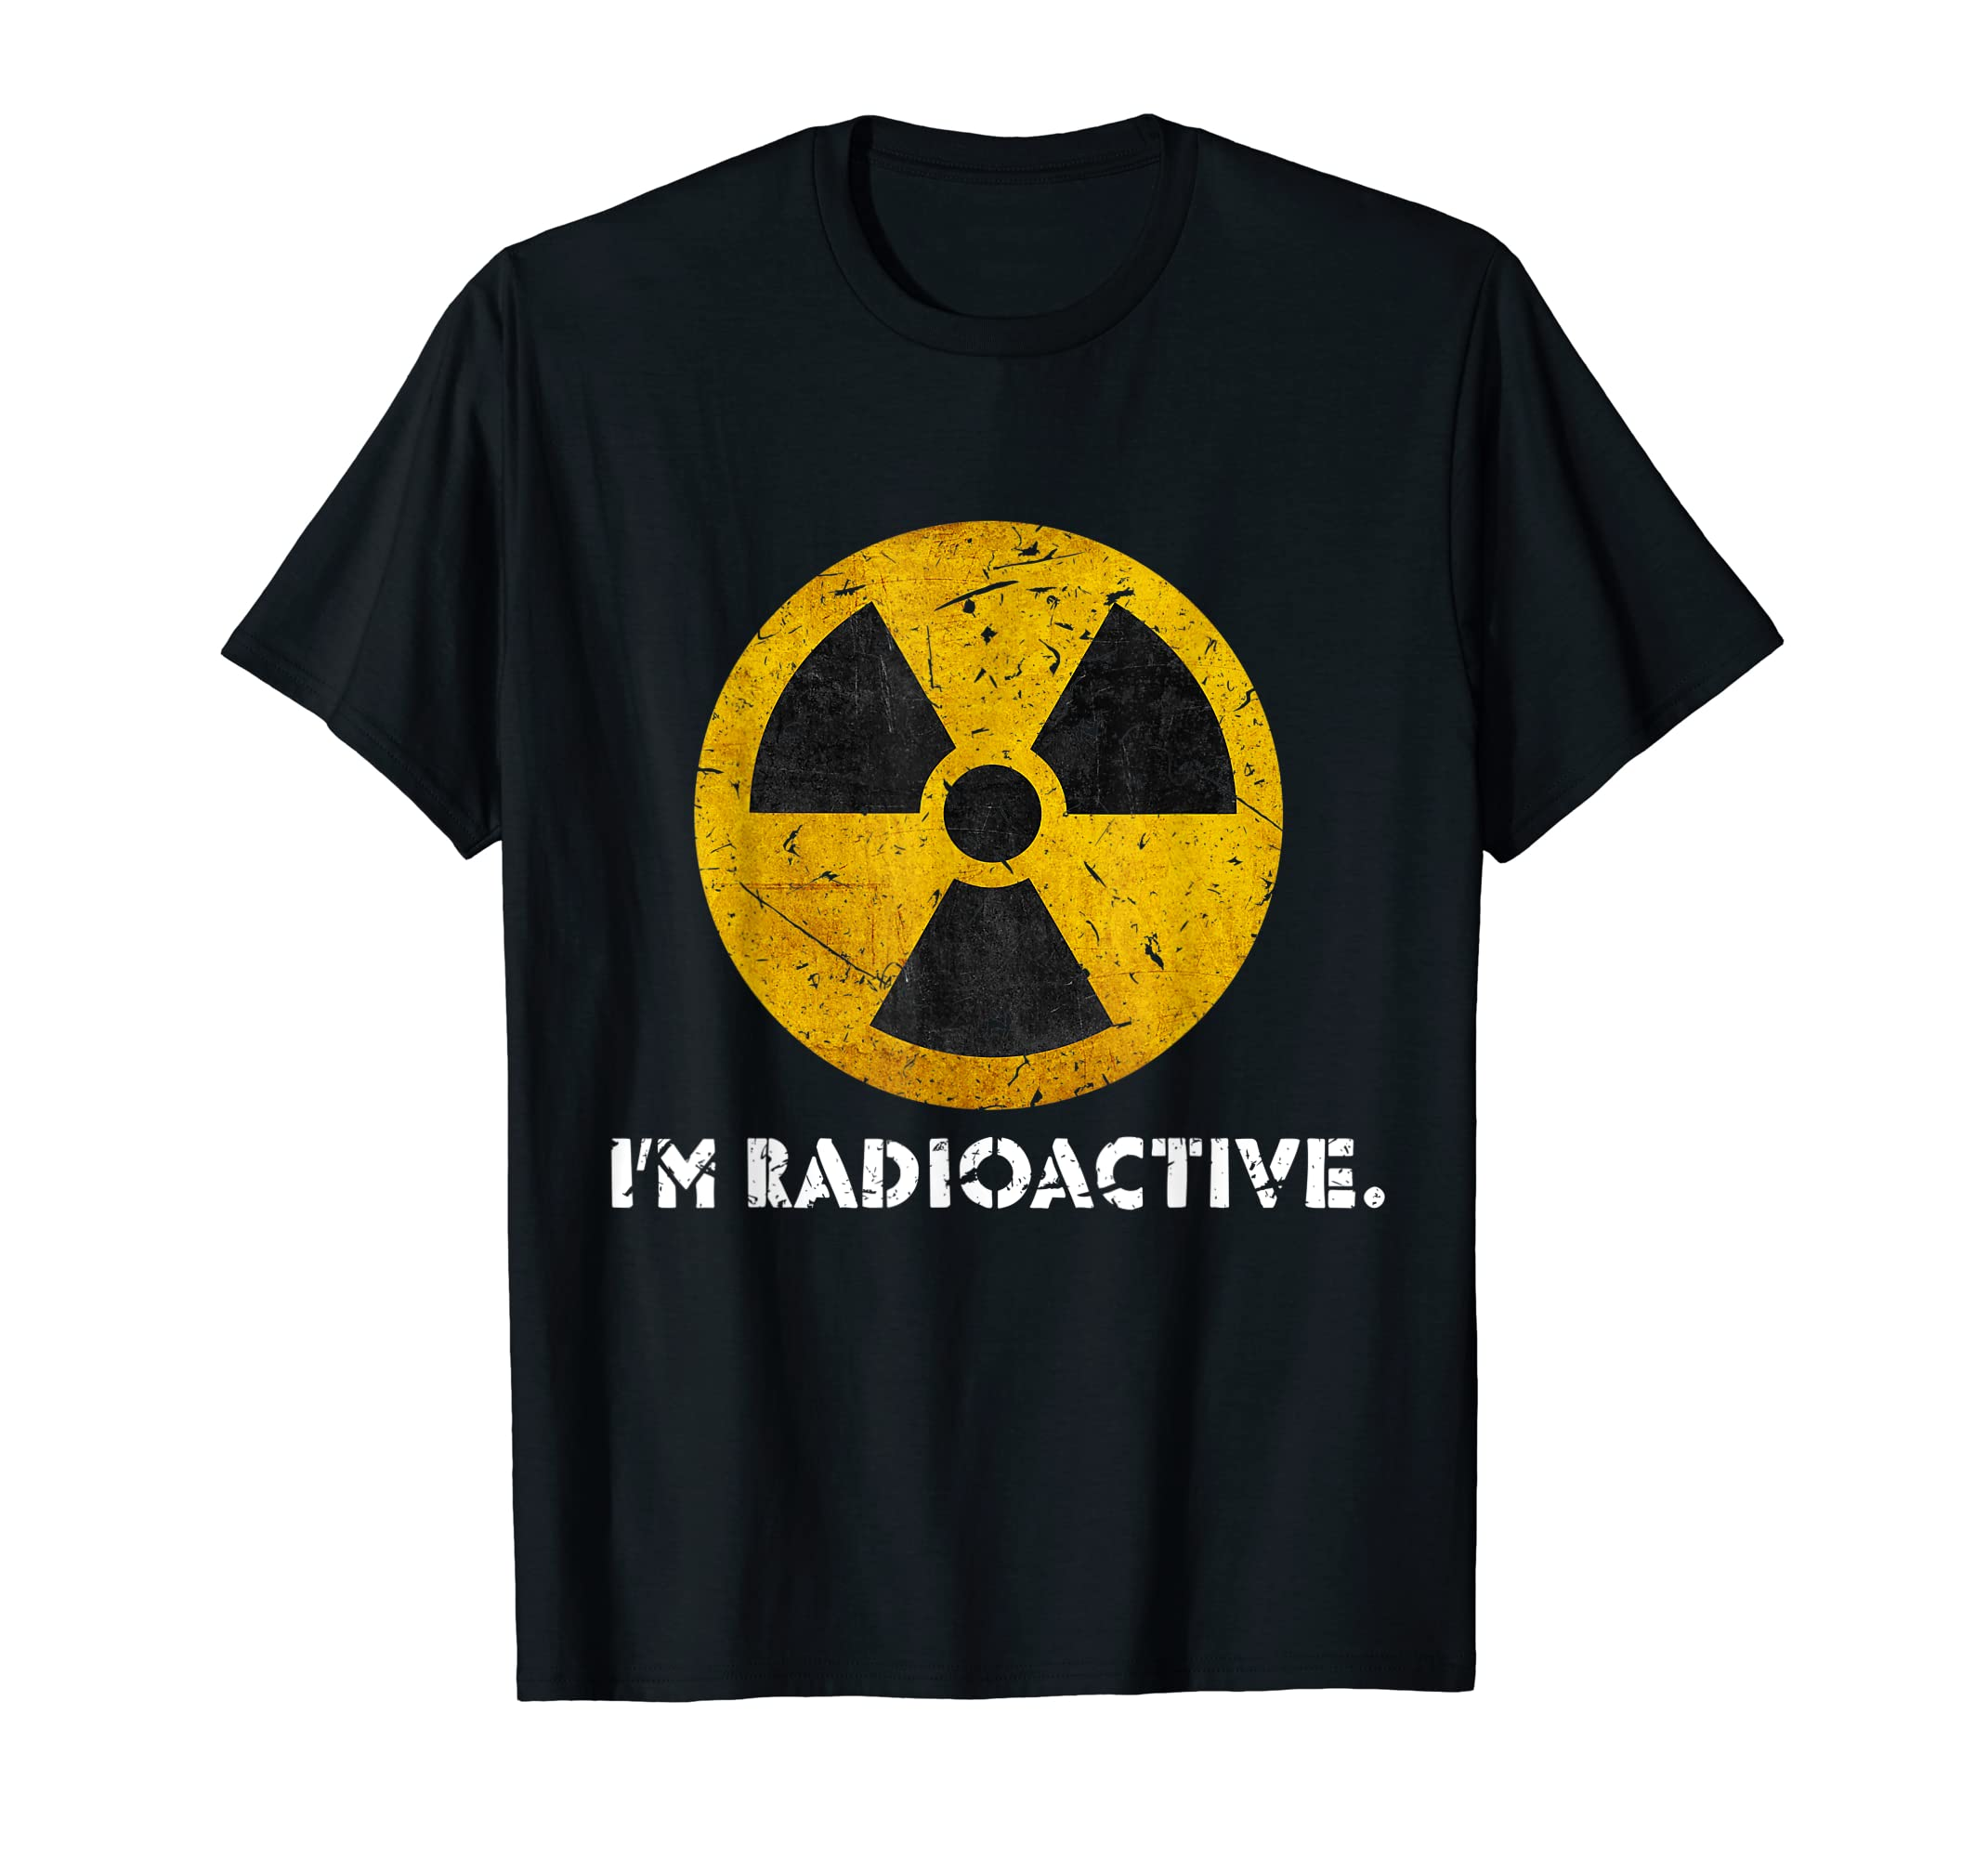 80d5243e5 Amazon.com: Radioactive Shirt - Funny Tshirt for Men, Boys and Kids:  Clothing